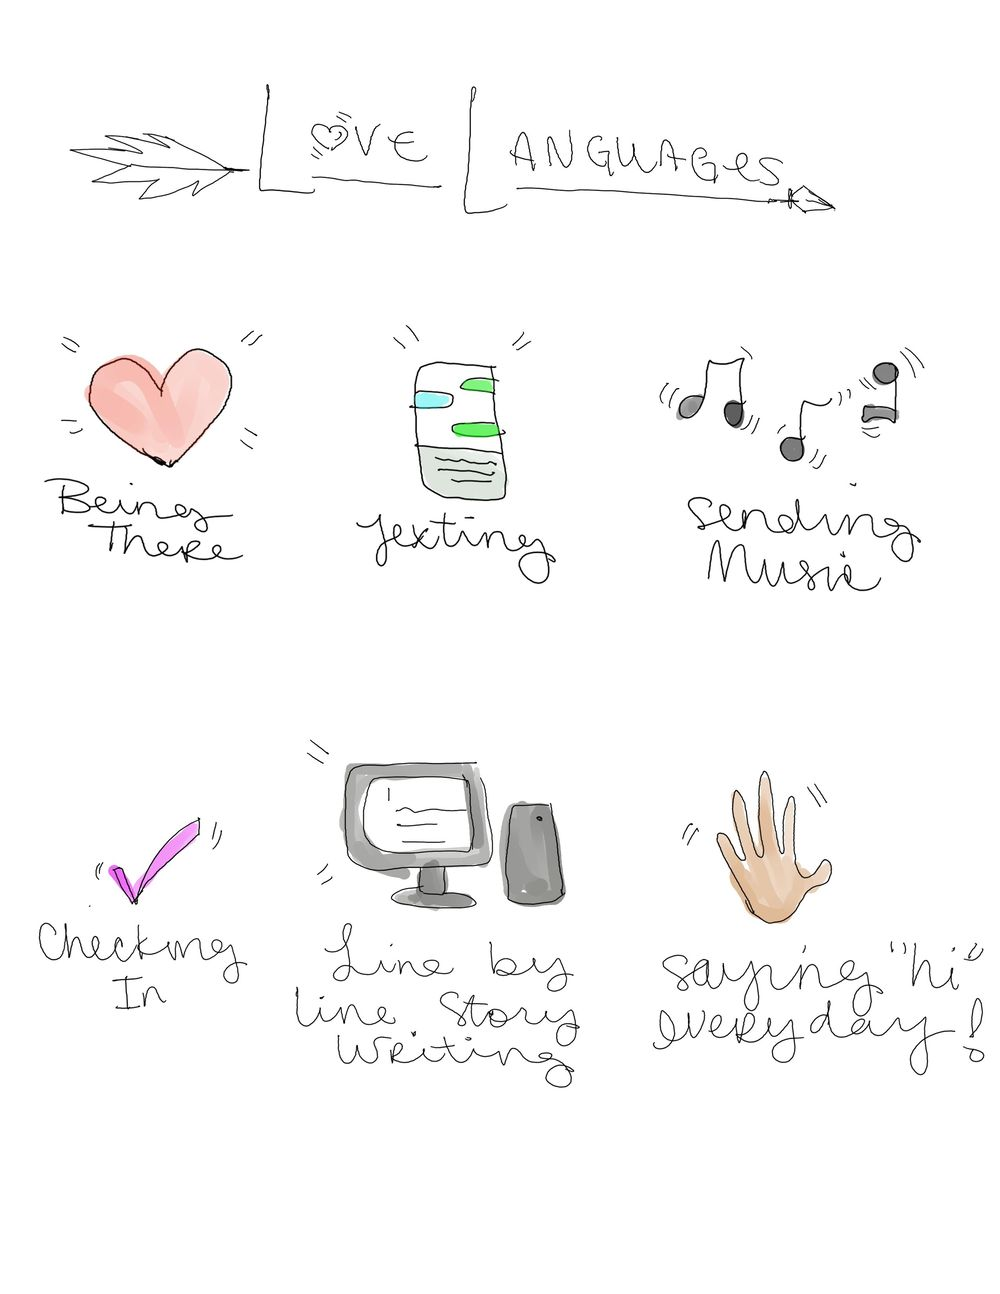 Self Care Journey, Vol 1 - image 5 - student project